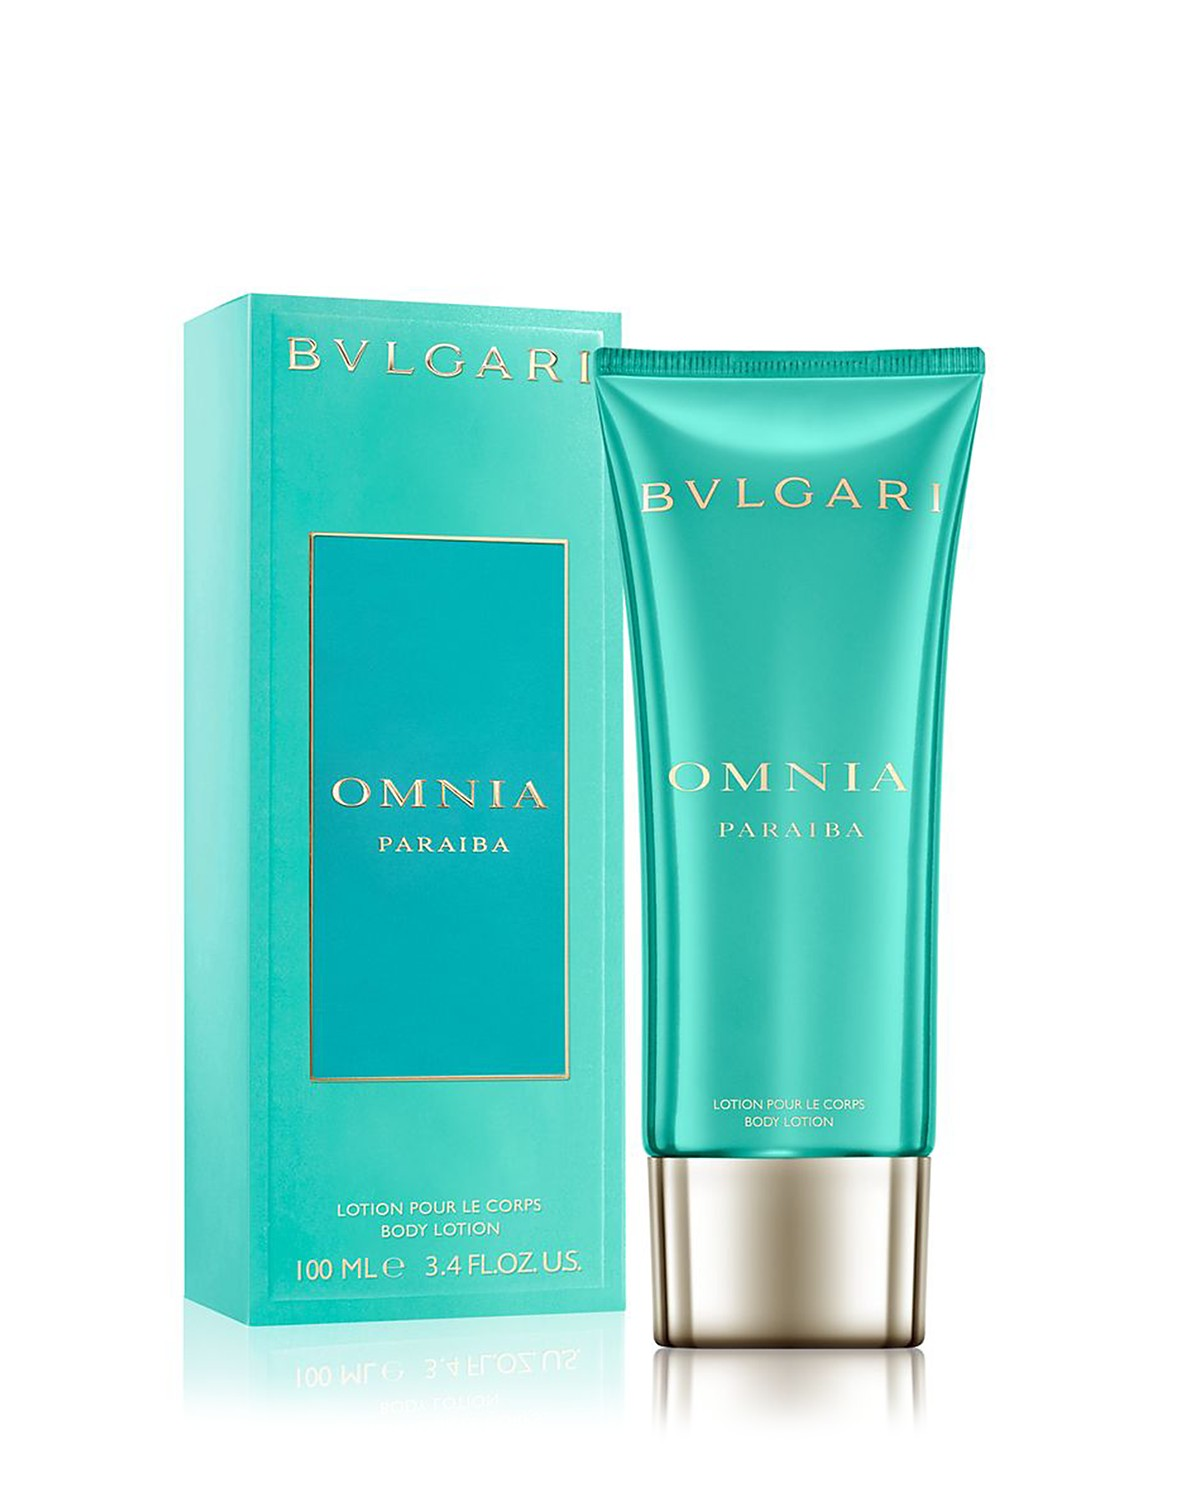 Bvlgari Omnia Paraiba Body Lotion for women - 100ml